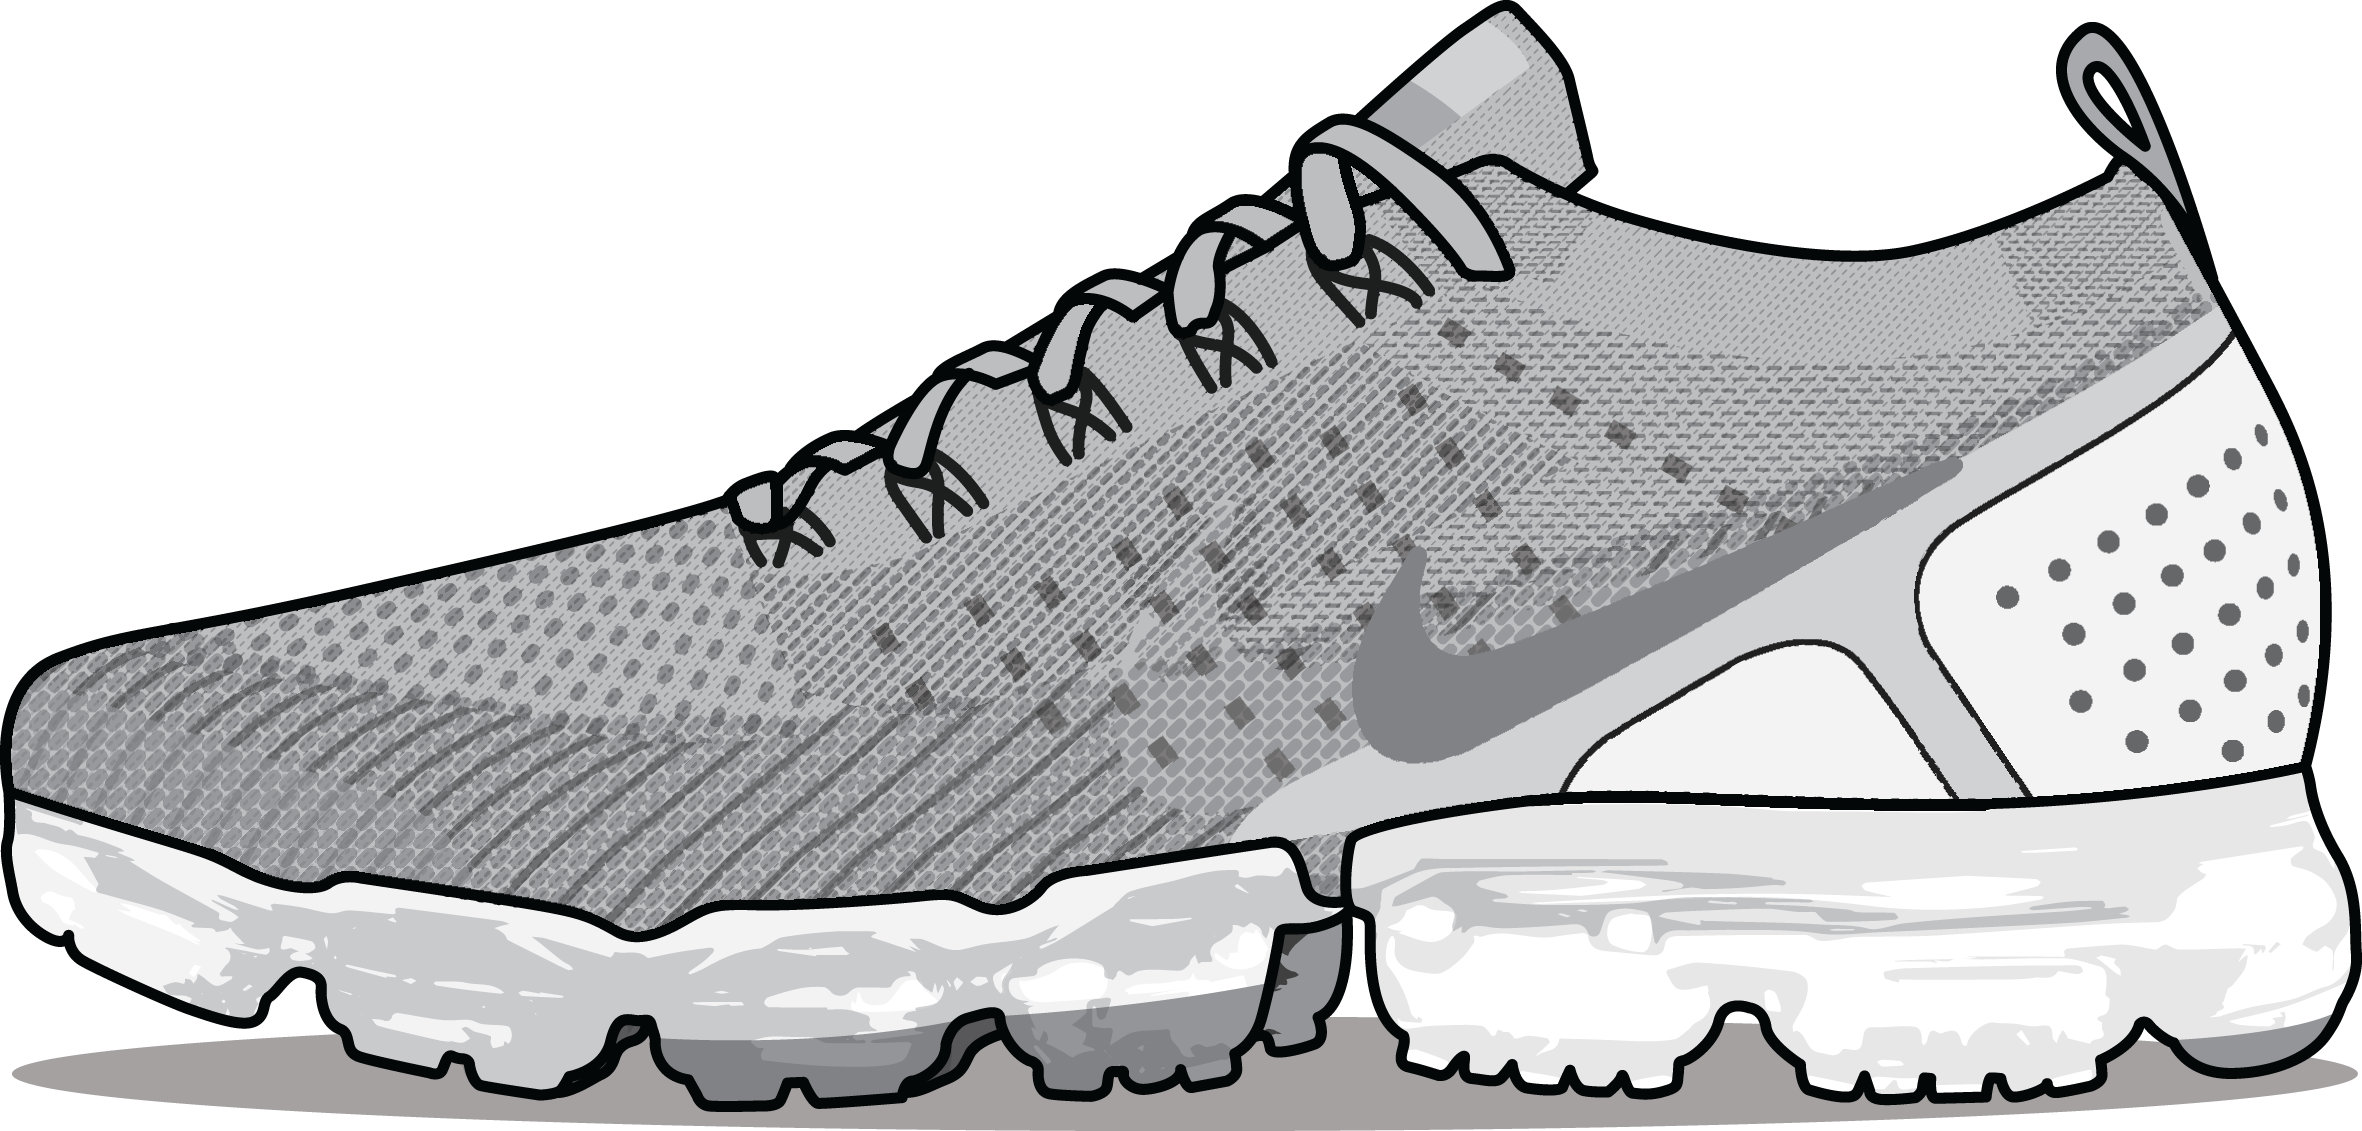 Nike Air VaporMax Lizard 'Wolf Grey' 'Pure Platinum'